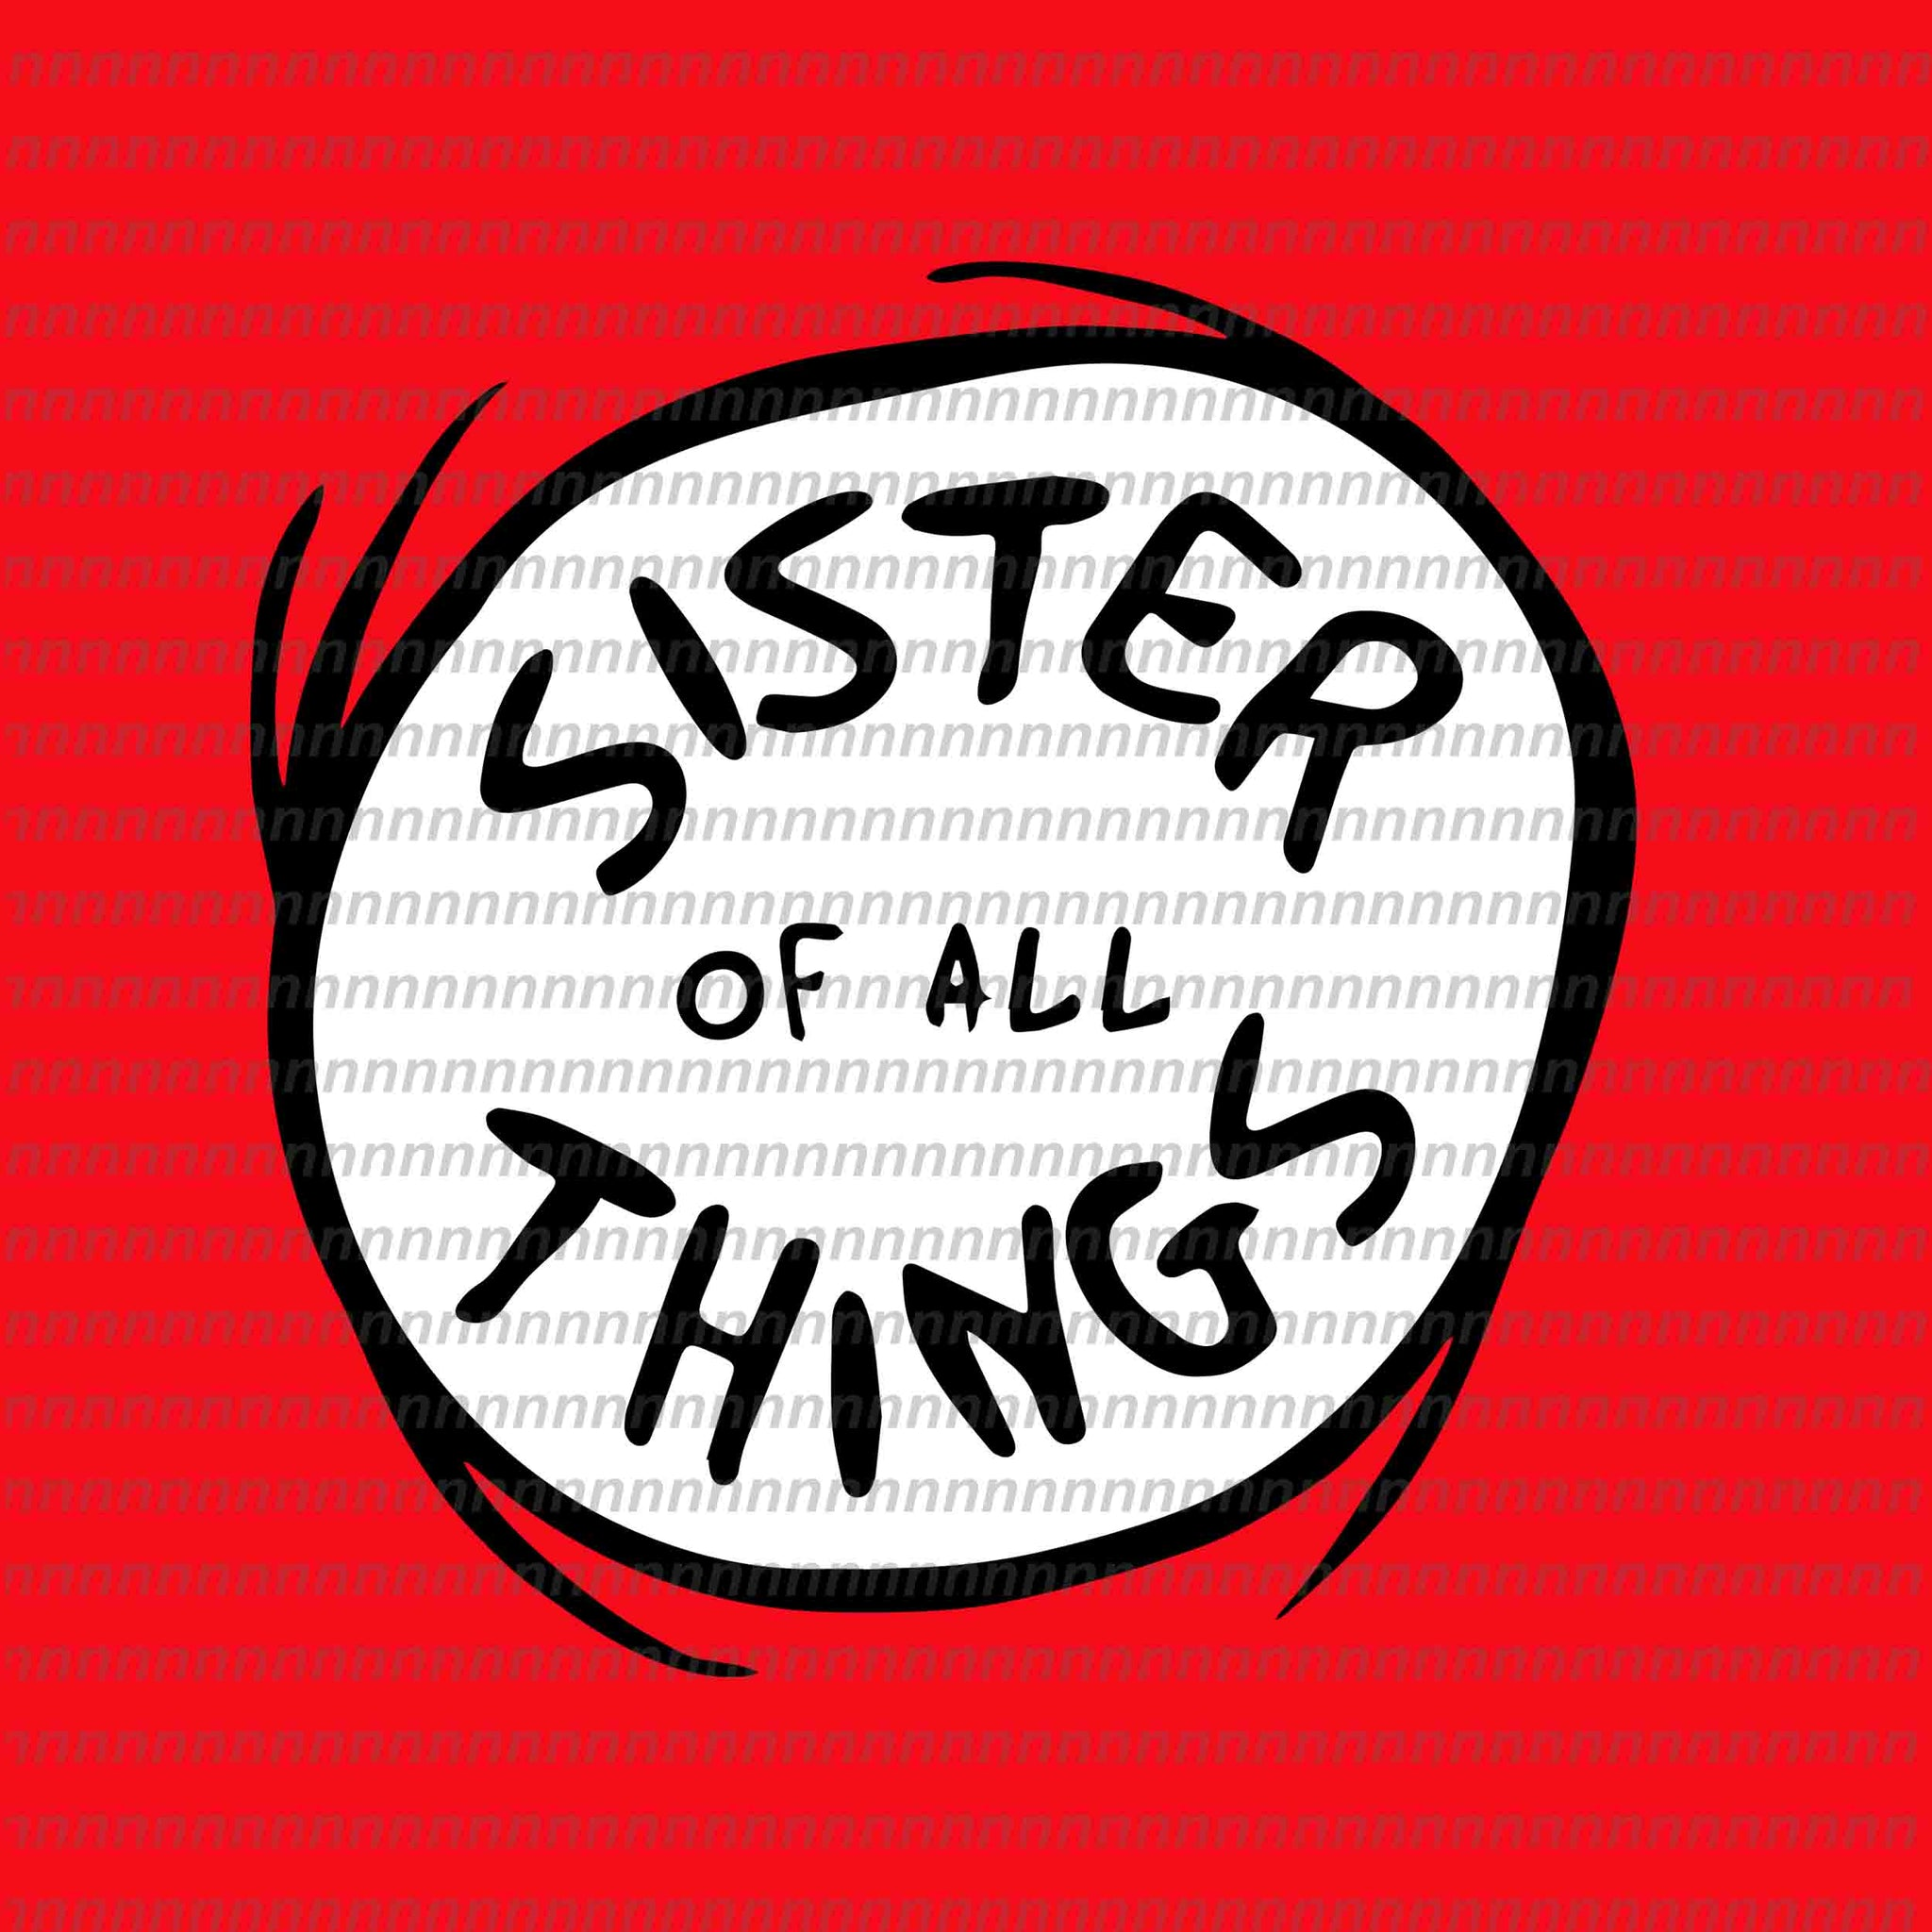 Sister of all things svg, dr seuss svg,dr seuss vector, dr seuss quote, dr seuss design, Cat in the hat svg, thing 1 thing 2 thing 3, svg, png, dxf, eps file